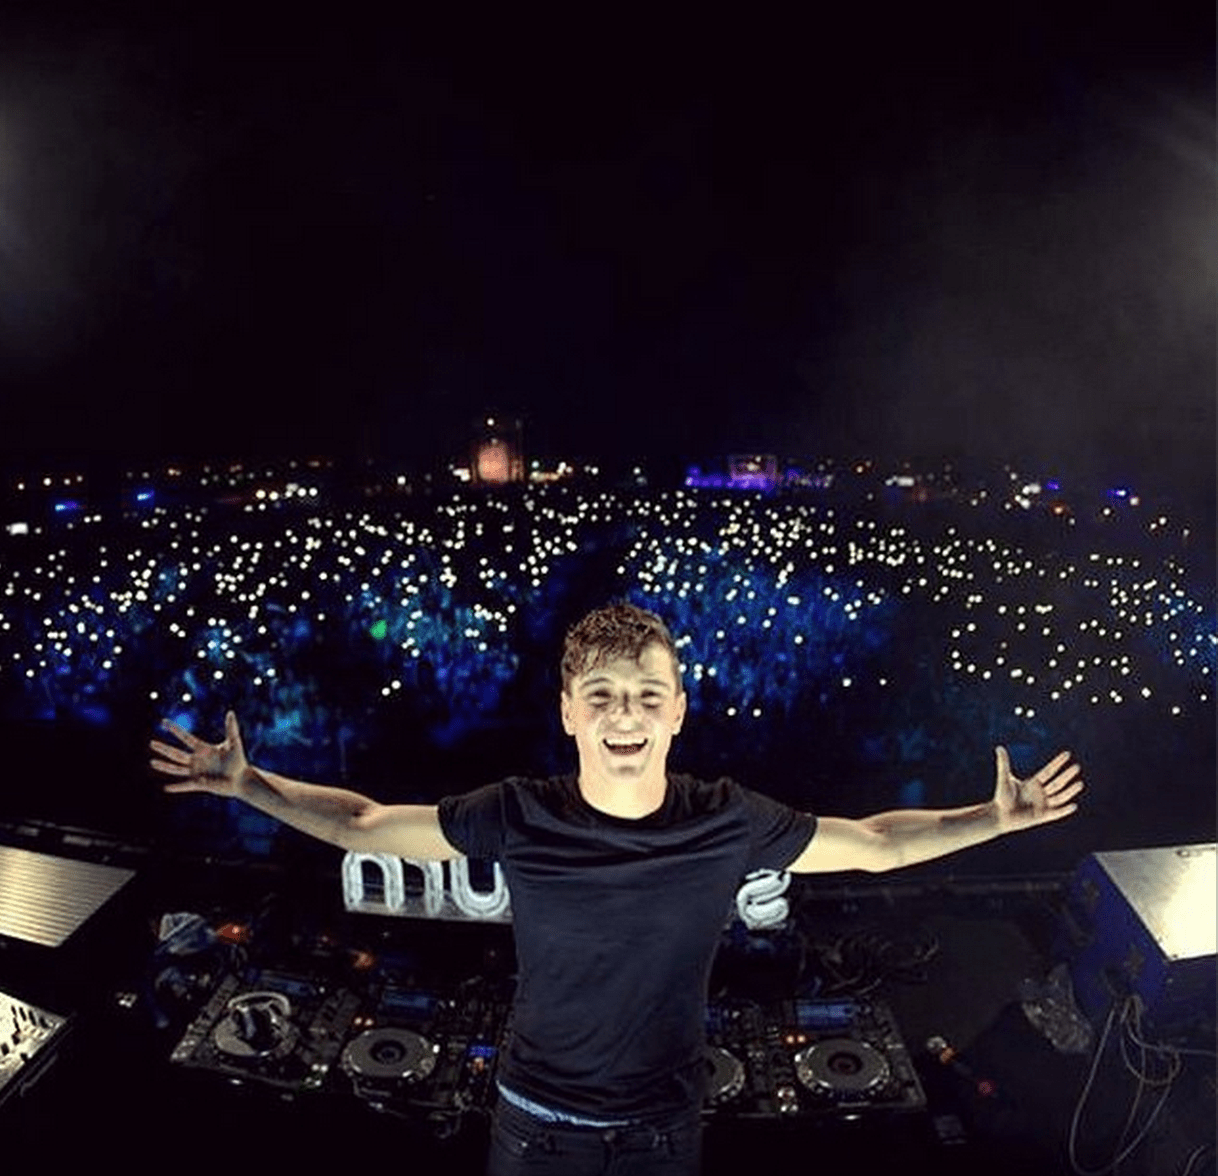 Huge thanks to Martin Garrix for making our experience at